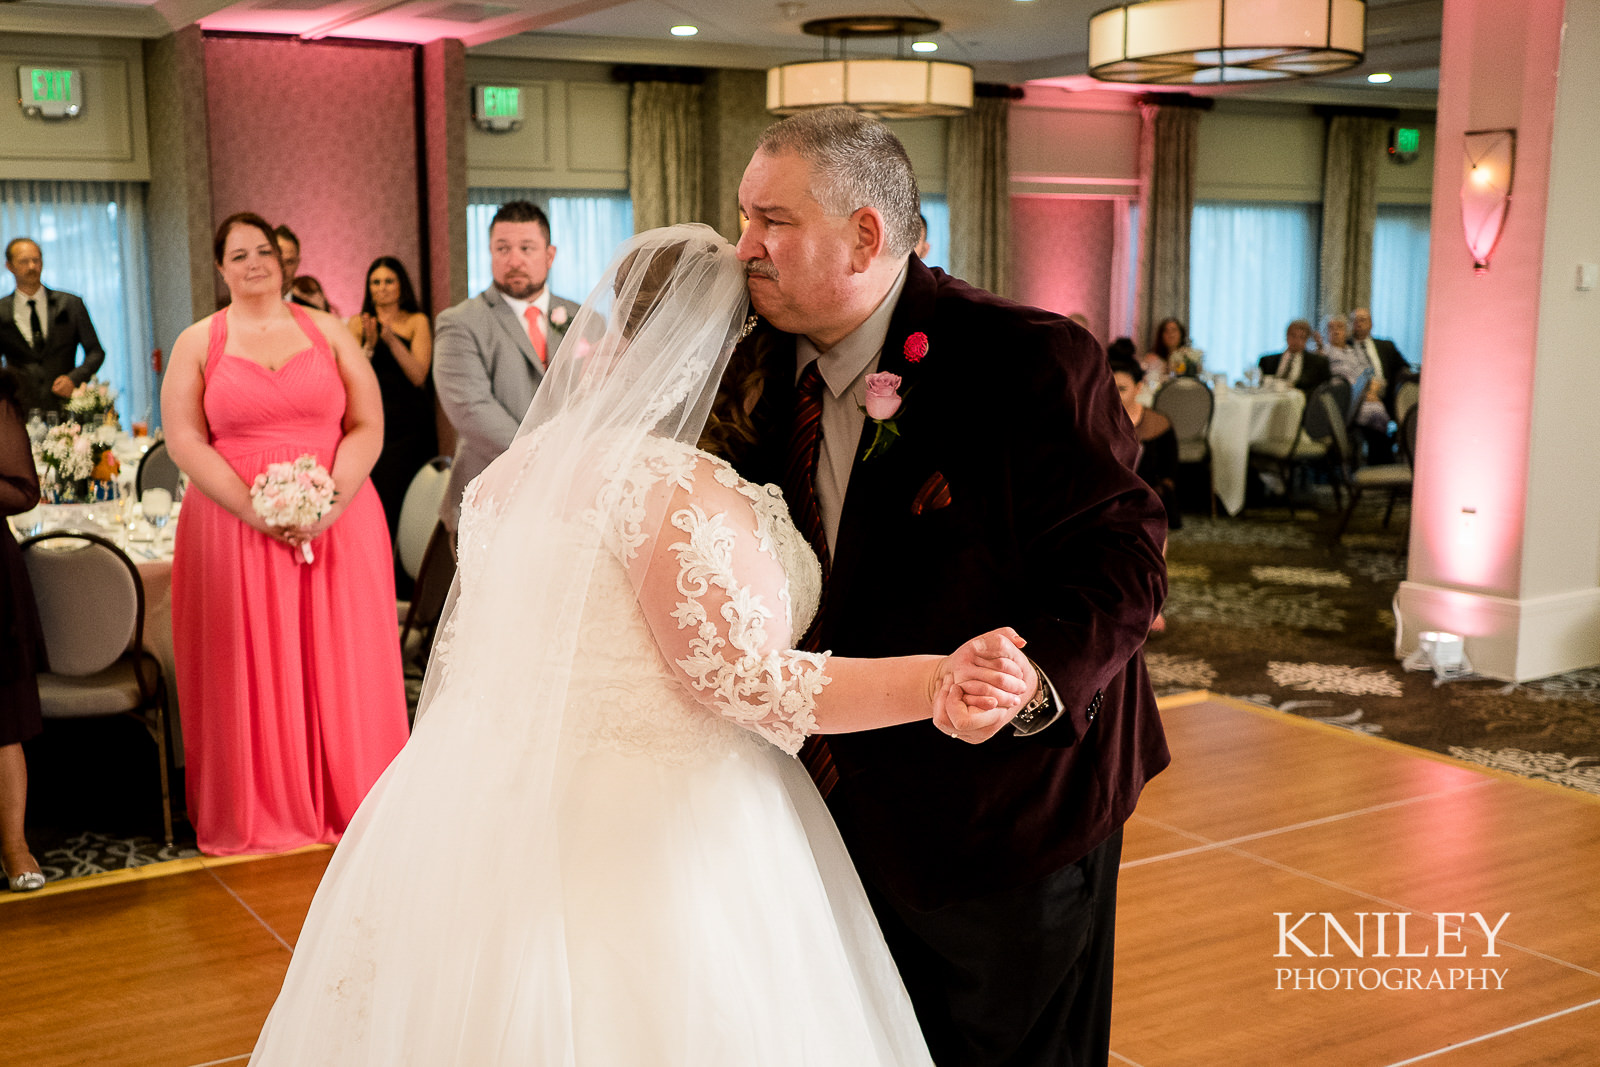 083 - Woodcliff Hotel - Rochester NY wedding photo - Kniley Photography.jpg